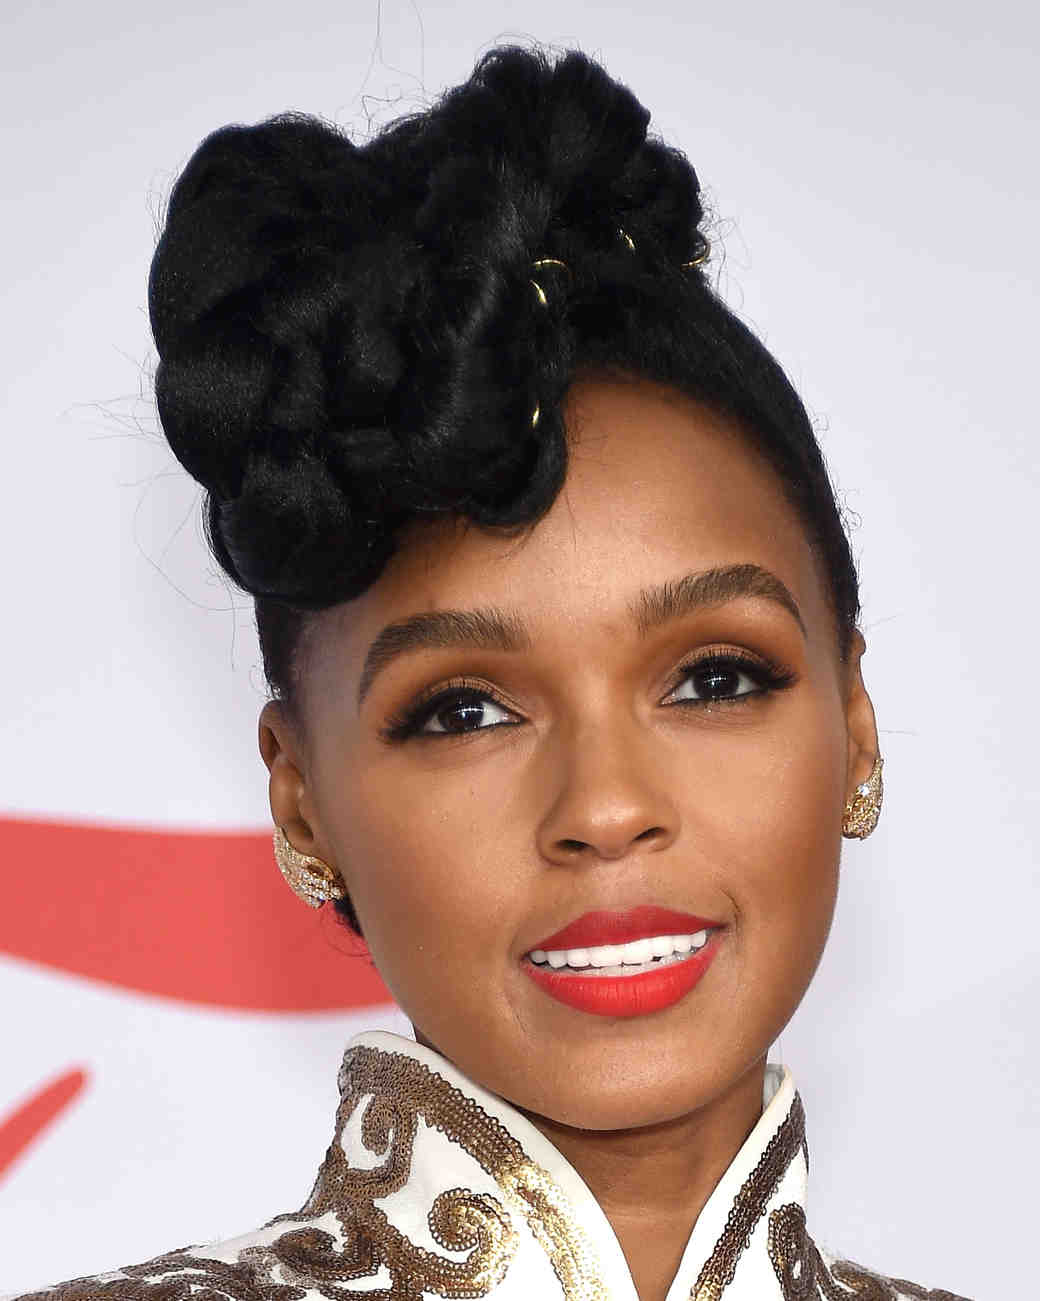 celebrity-wedding-makeup-janellemonae-0915.jpg